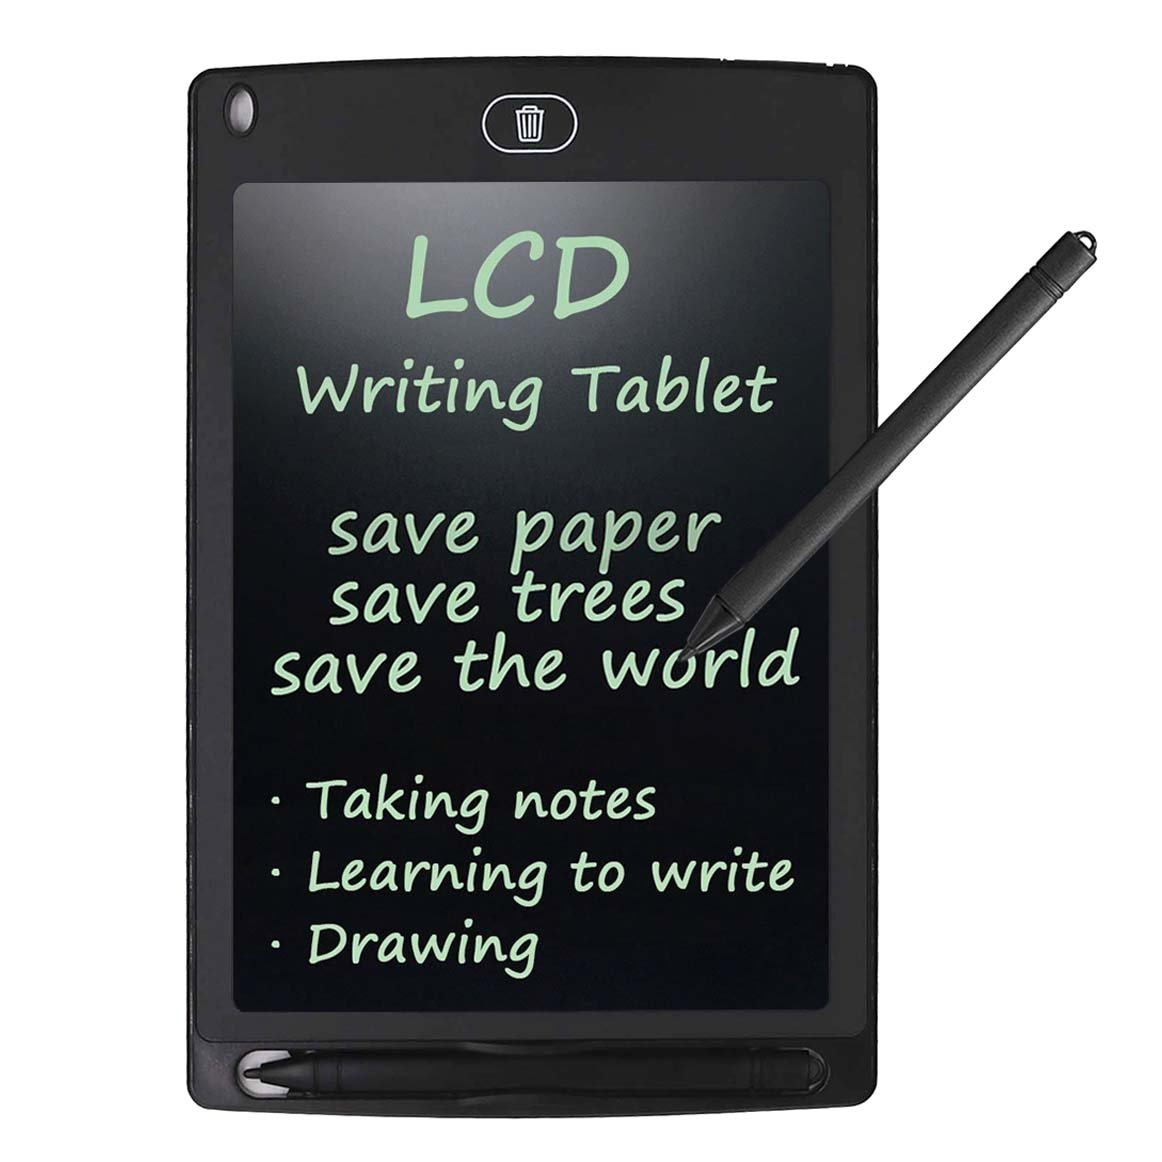 LCD Writing Tablet, Rantizon 8.5-Inch LCD Drawing Board with Stylus Electronic Writing Pad One Touch Clear Paperless Doodle Pad eWriter Graffiti Gifts for Kids and Business Office Memo Board Message Board Digital Drawing Notepad 43223-89271